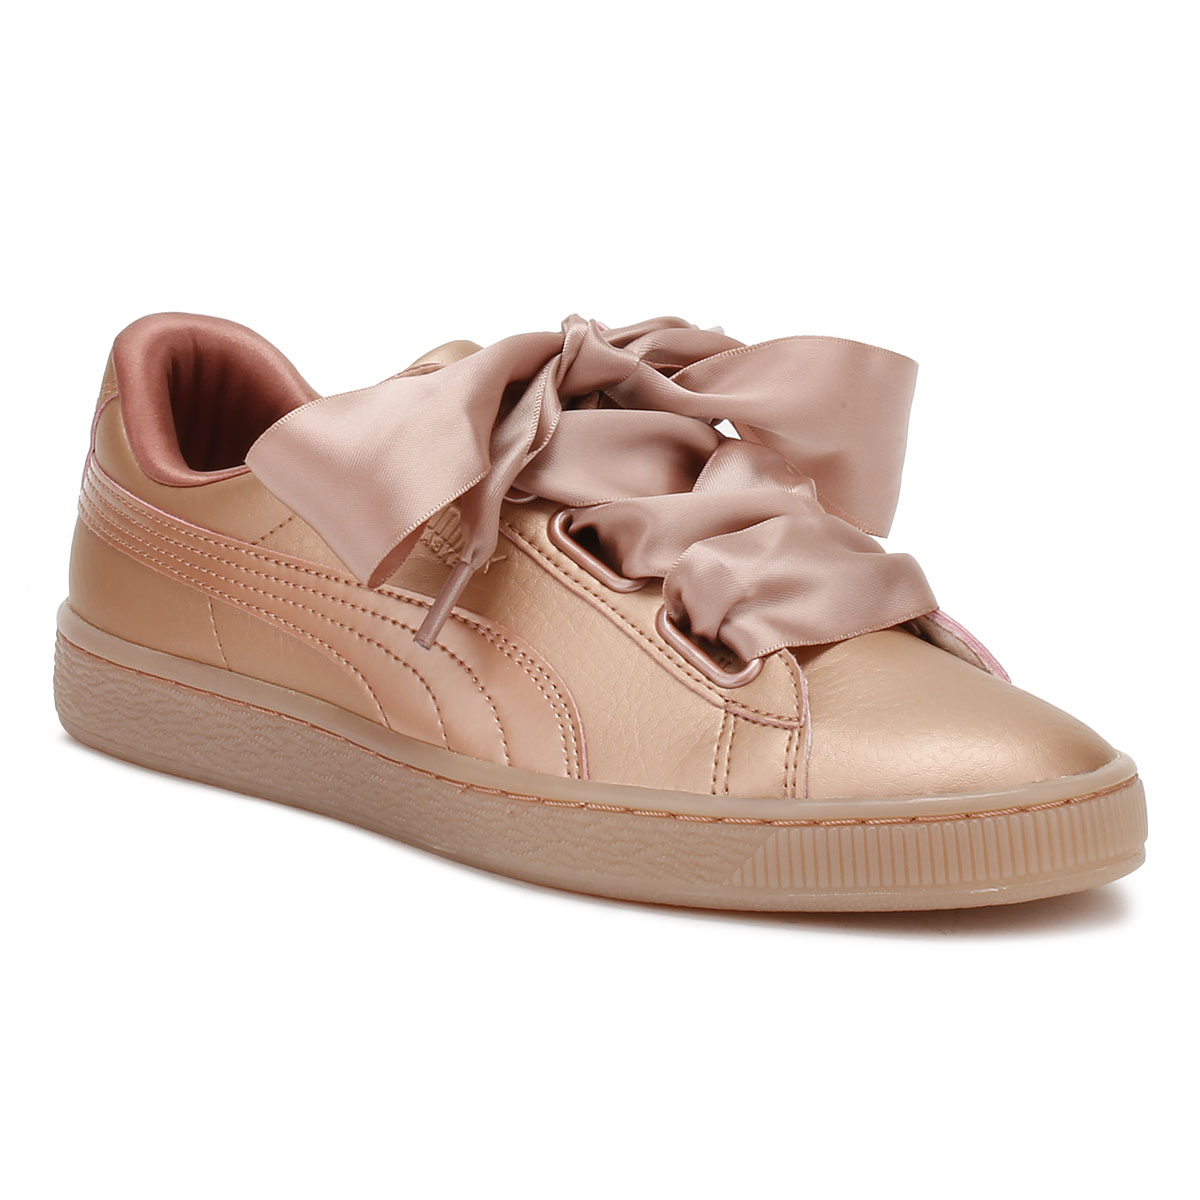 puma womens copper pink trainers basket heart patent leather ladies shoes ebay. Black Bedroom Furniture Sets. Home Design Ideas